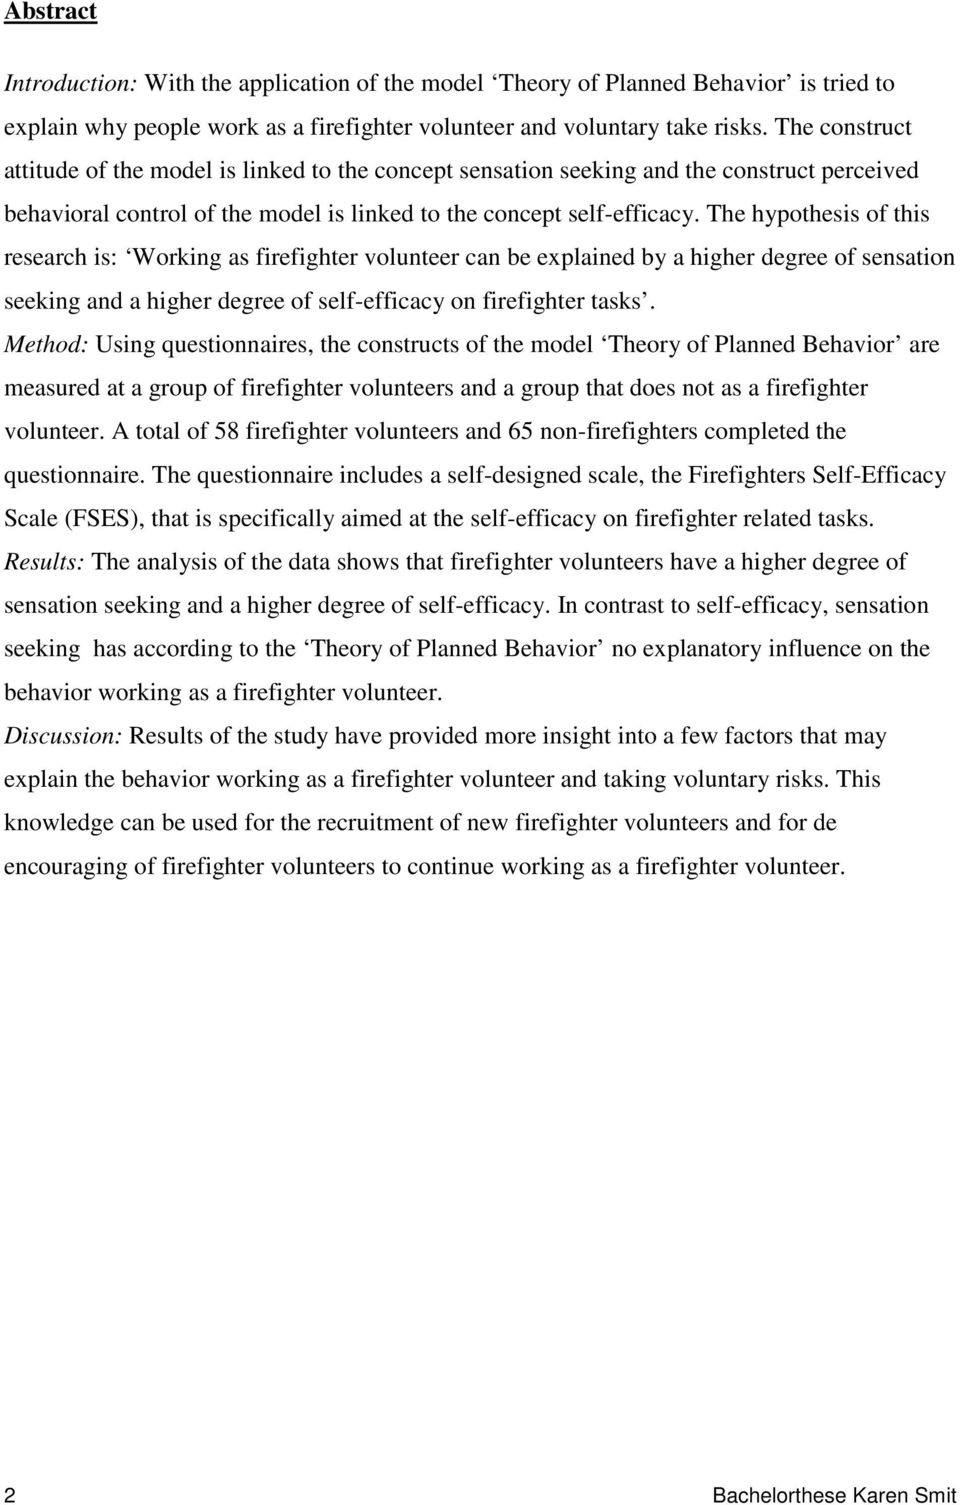 The hypothesis of this research is: Working as firefighter volunteer can be explained by a higher degree of sensation seeking and a higher degree of self-efficacy on firefighter tasks.